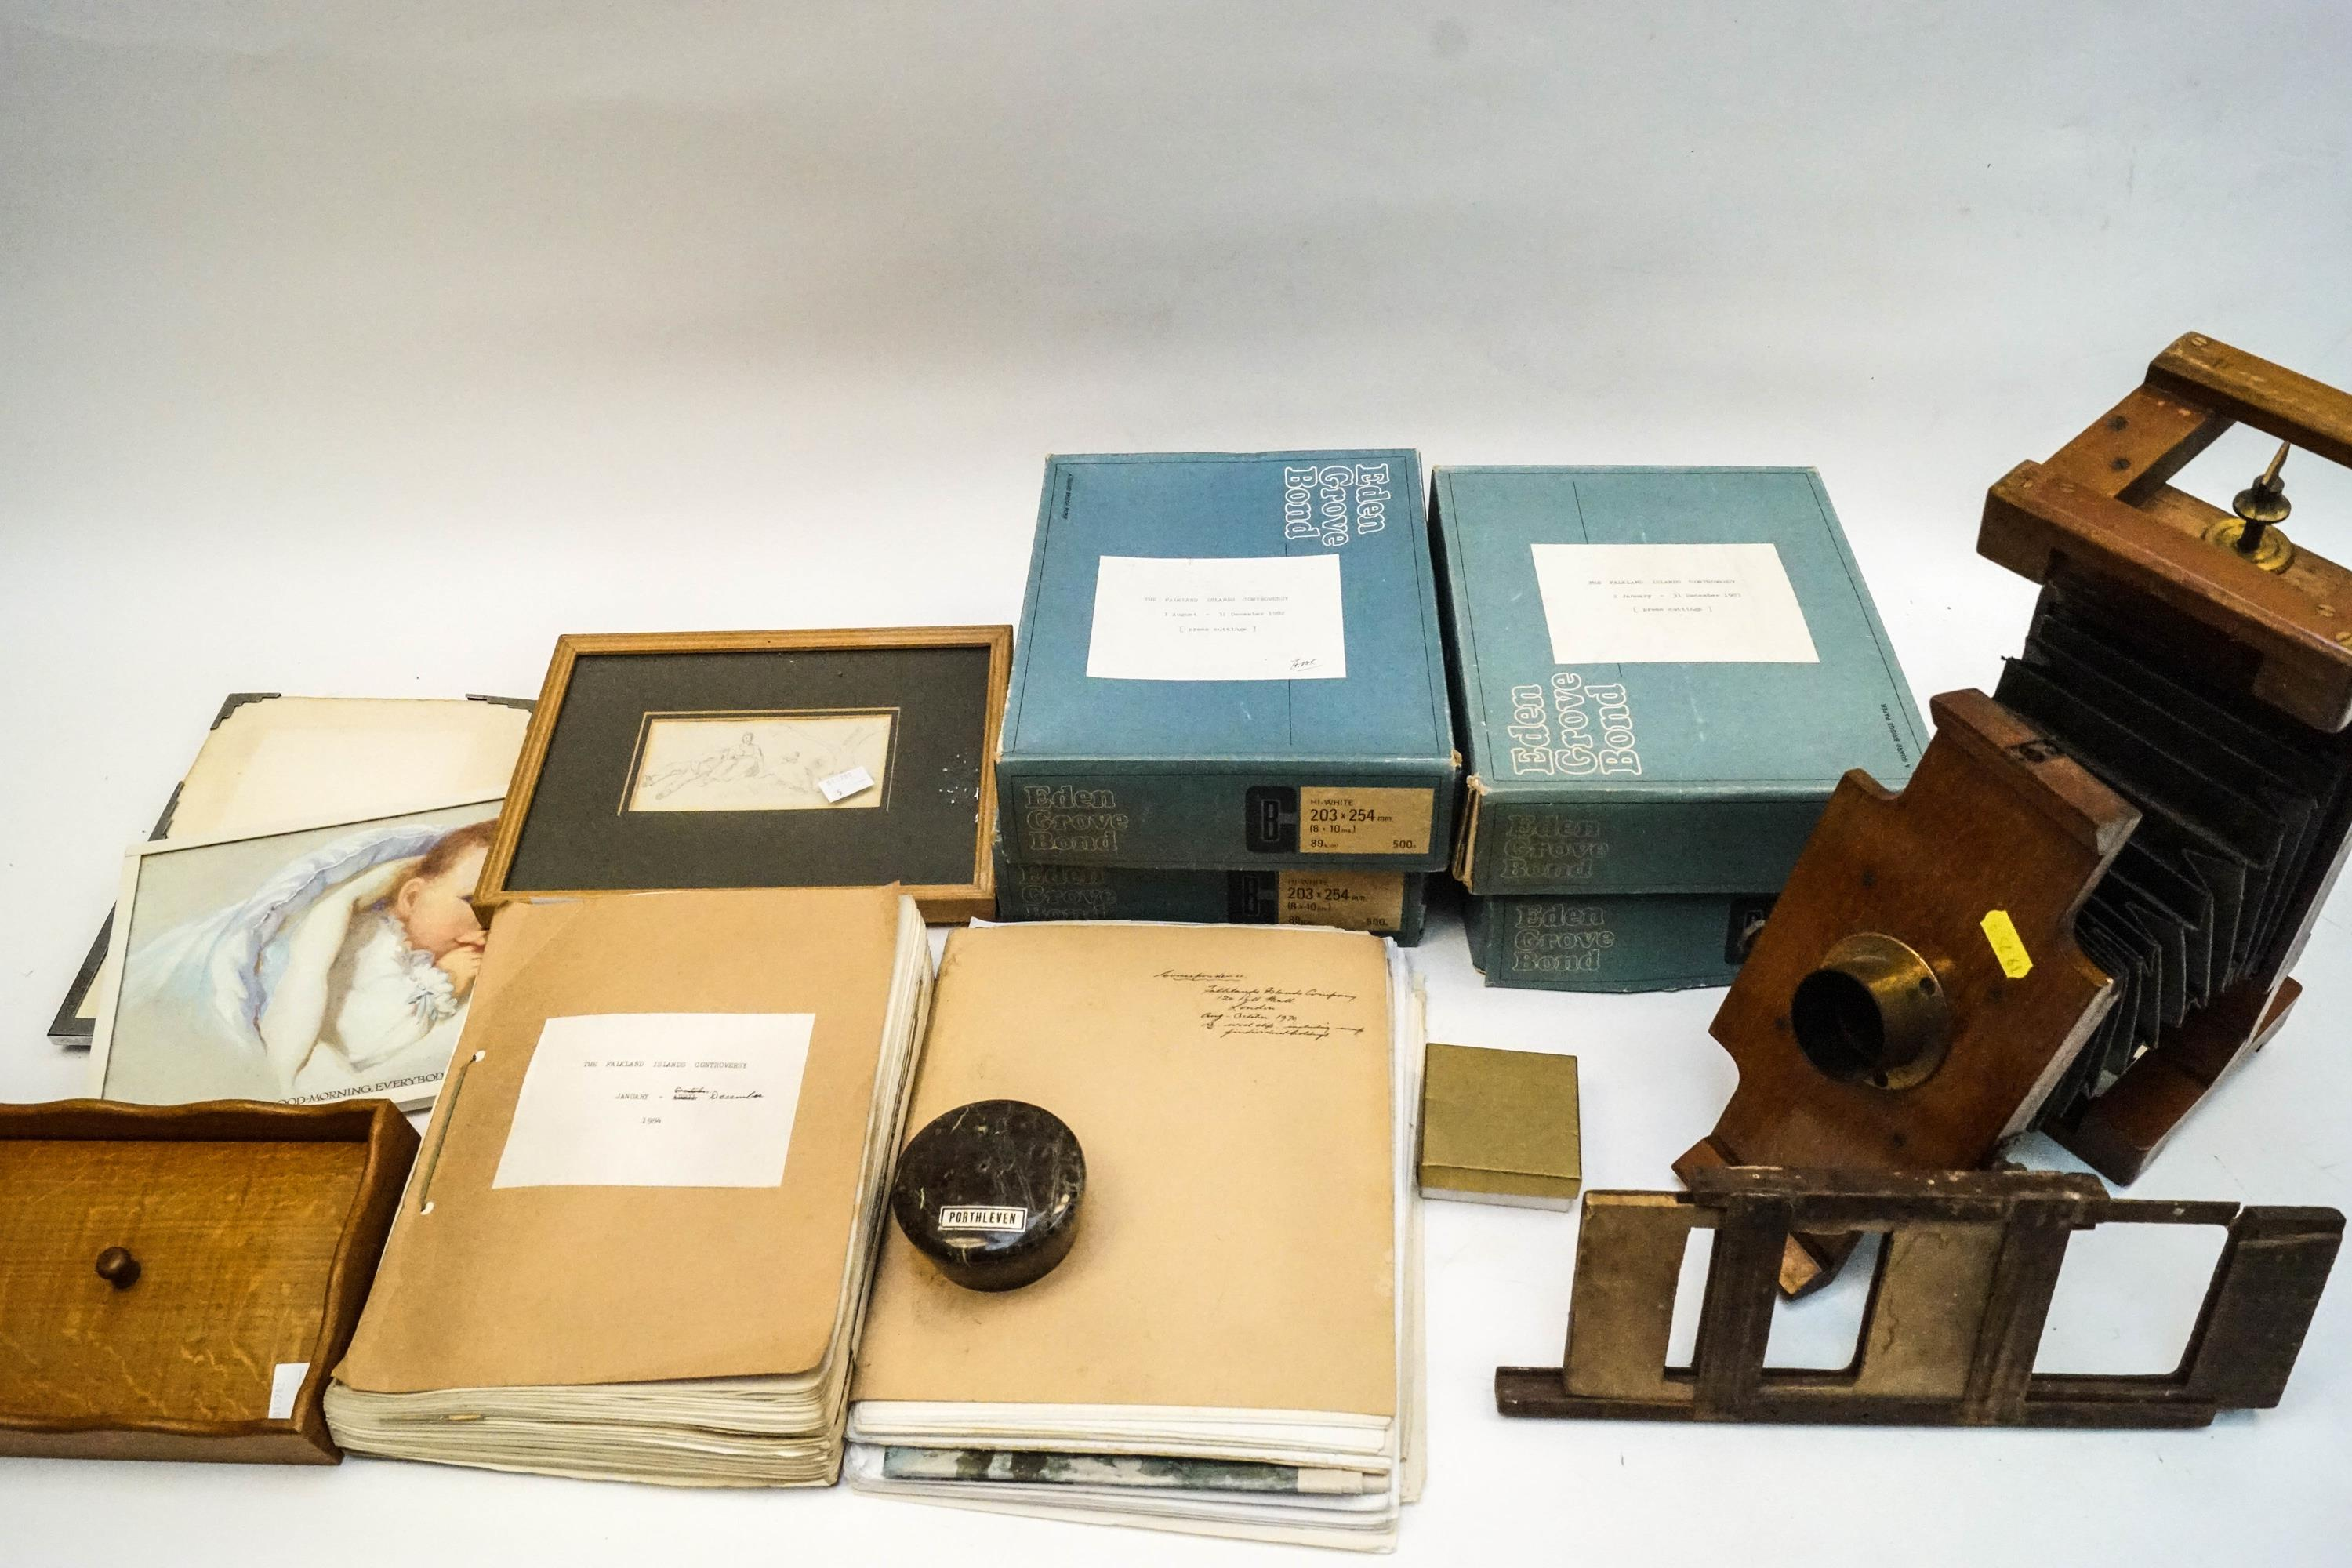 Lot 50 - A 19th century camera lens and other items